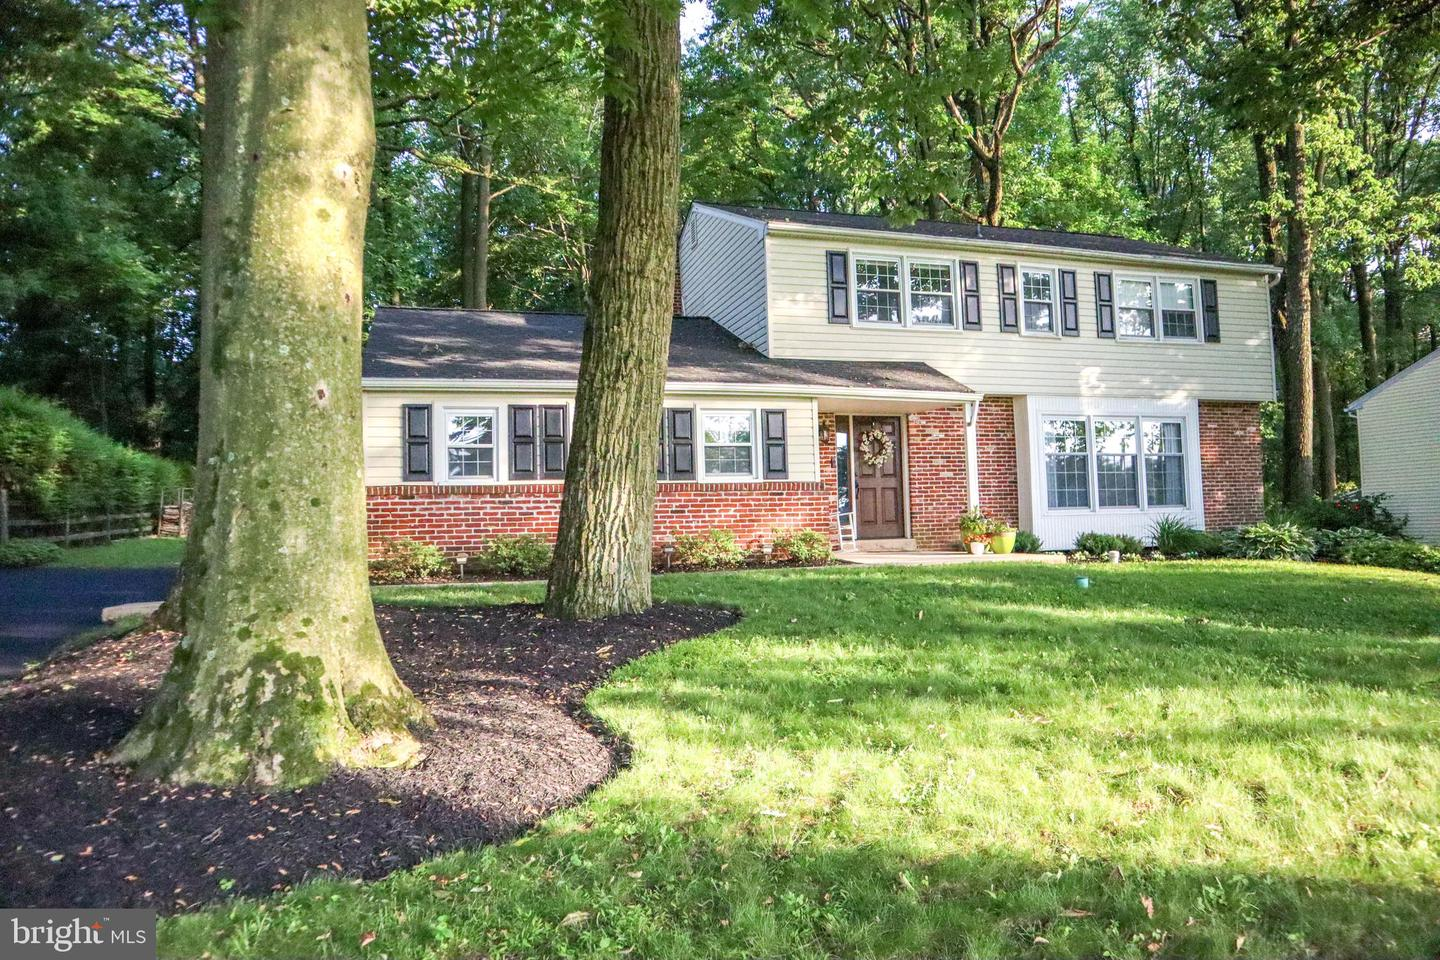 310 King Road West Chester , PA 19380